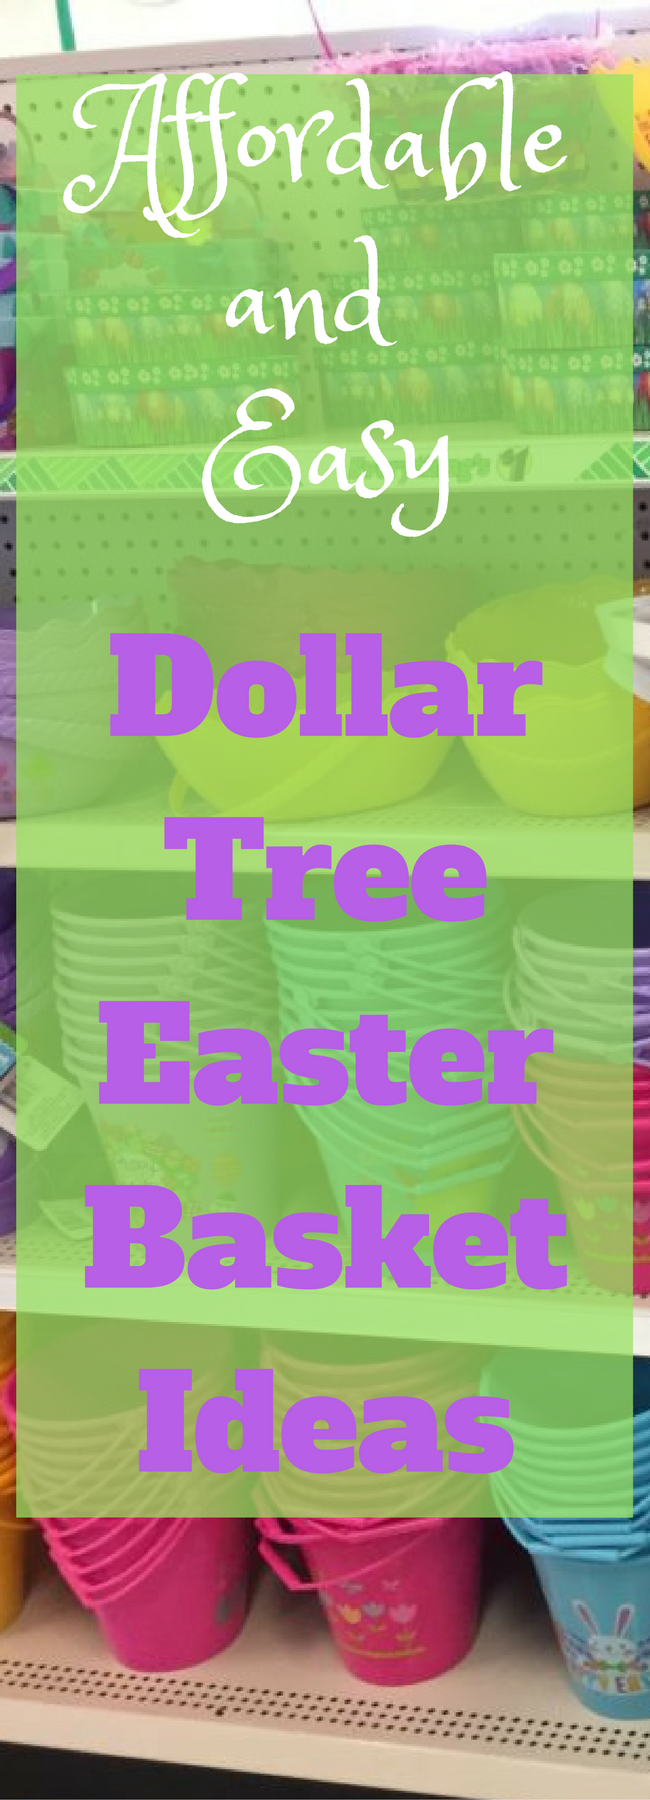 Easter Baskets For Sale: 100+ Dollar Tree Easter Basket Stuffers For All Ages